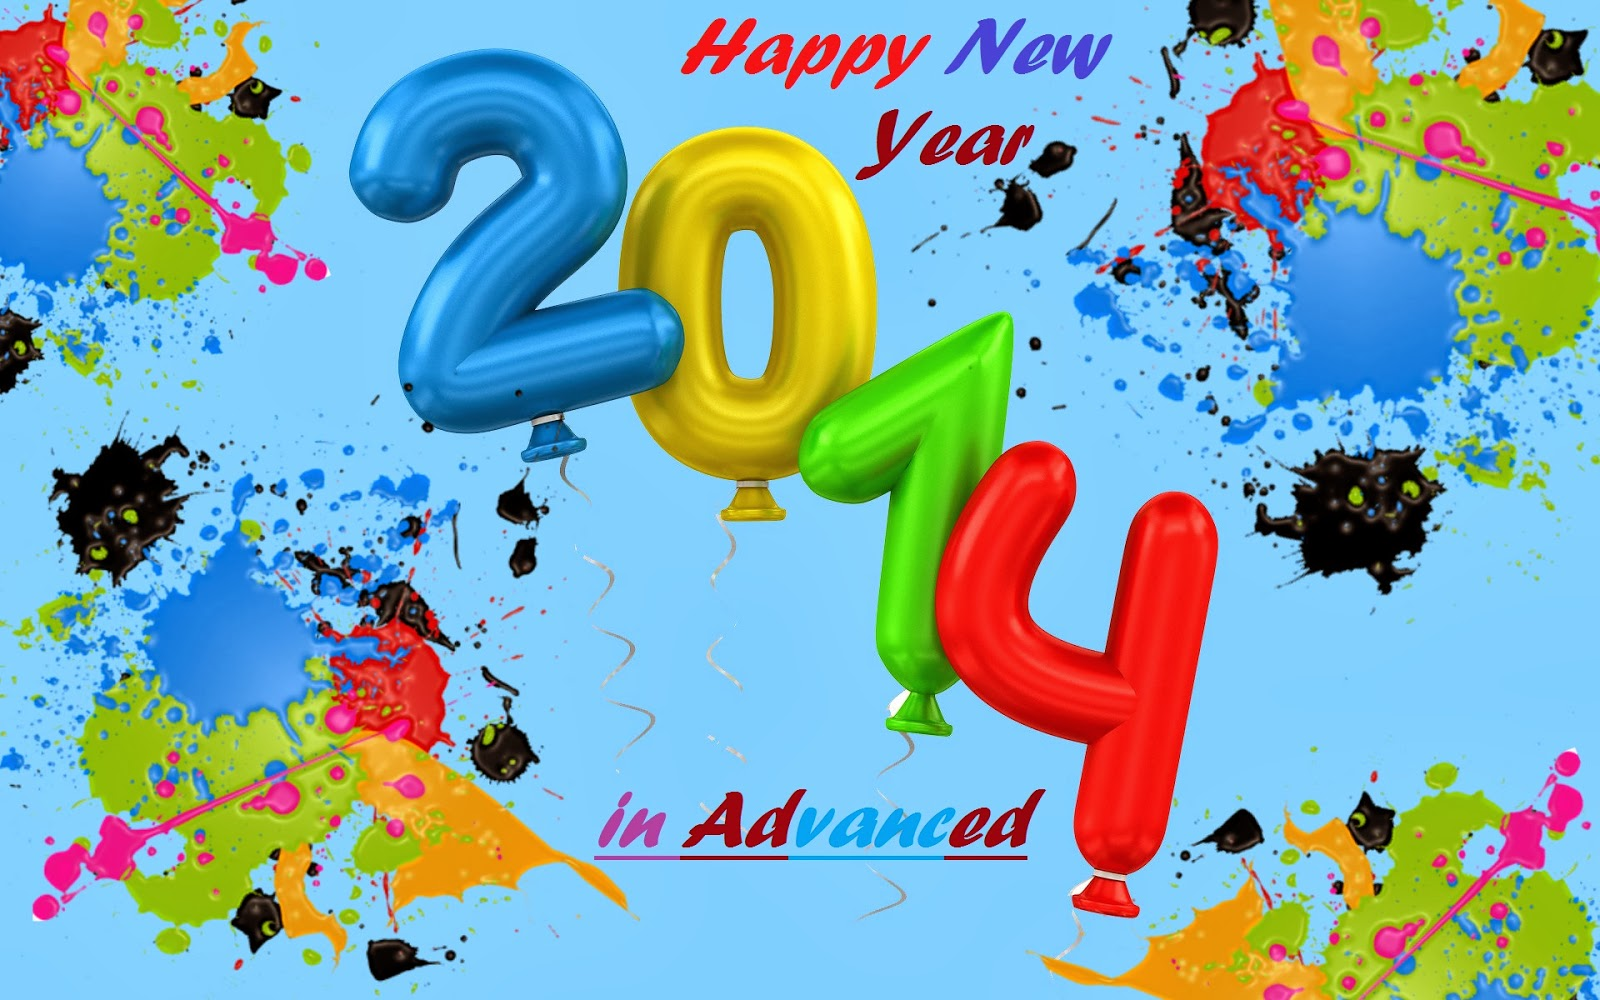 wishing you best happy new year wishes for friends may. 1600 x 1000.Happy New Year Sinhala Sms Text Messages